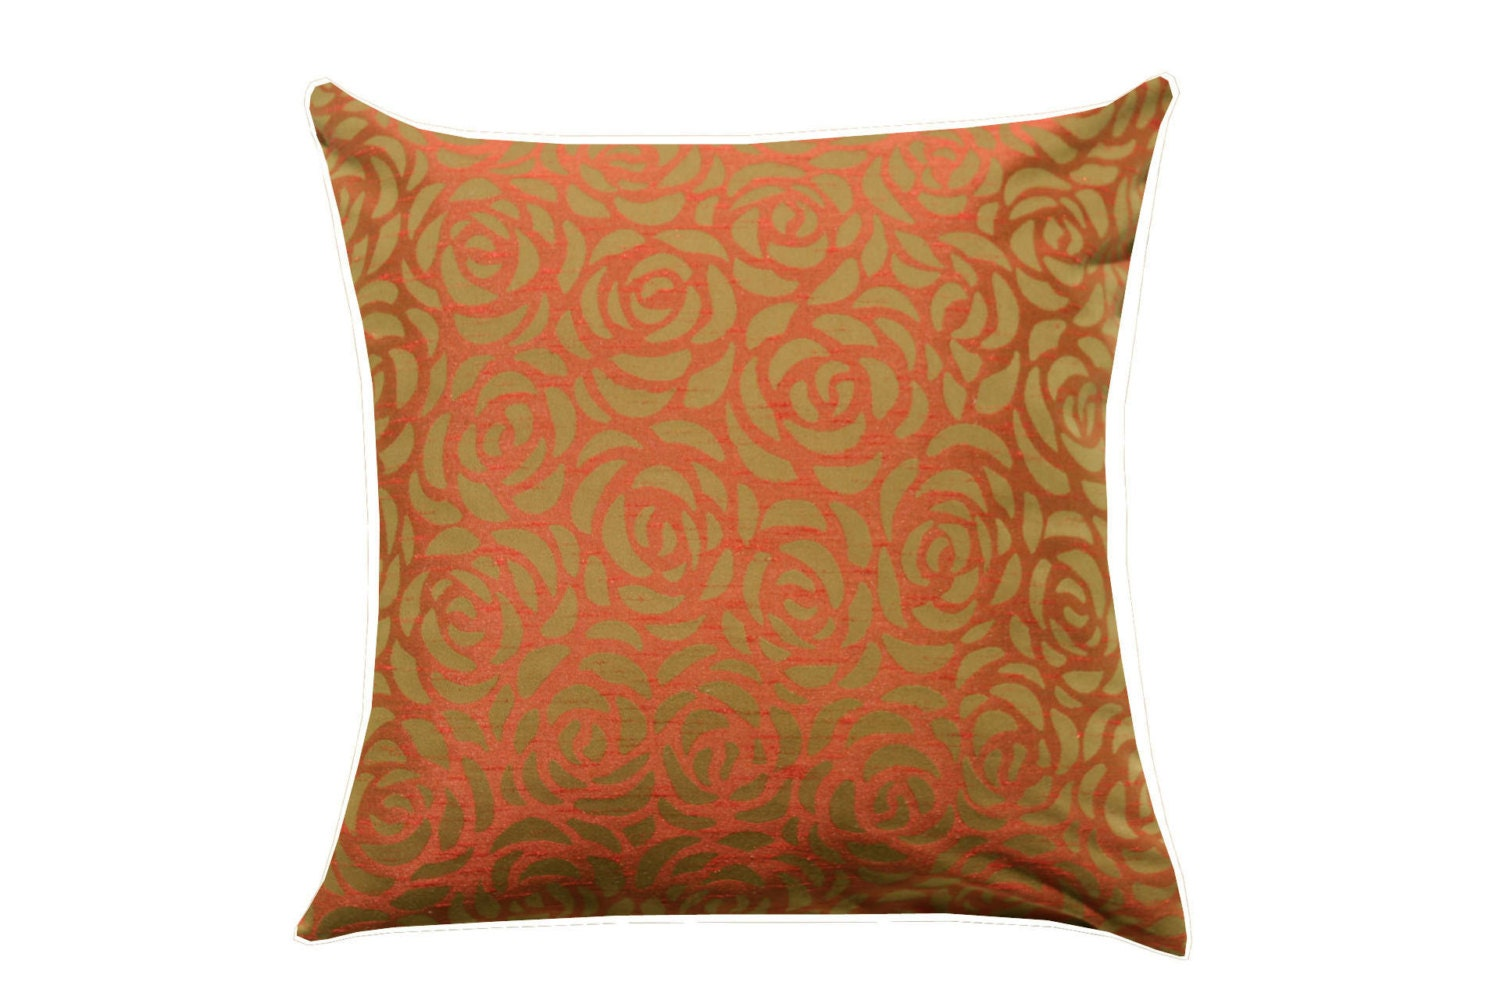 Throw Pillows Lowes : Decorative Throw Pillow CoversCouch Pillow Luxury Pillow